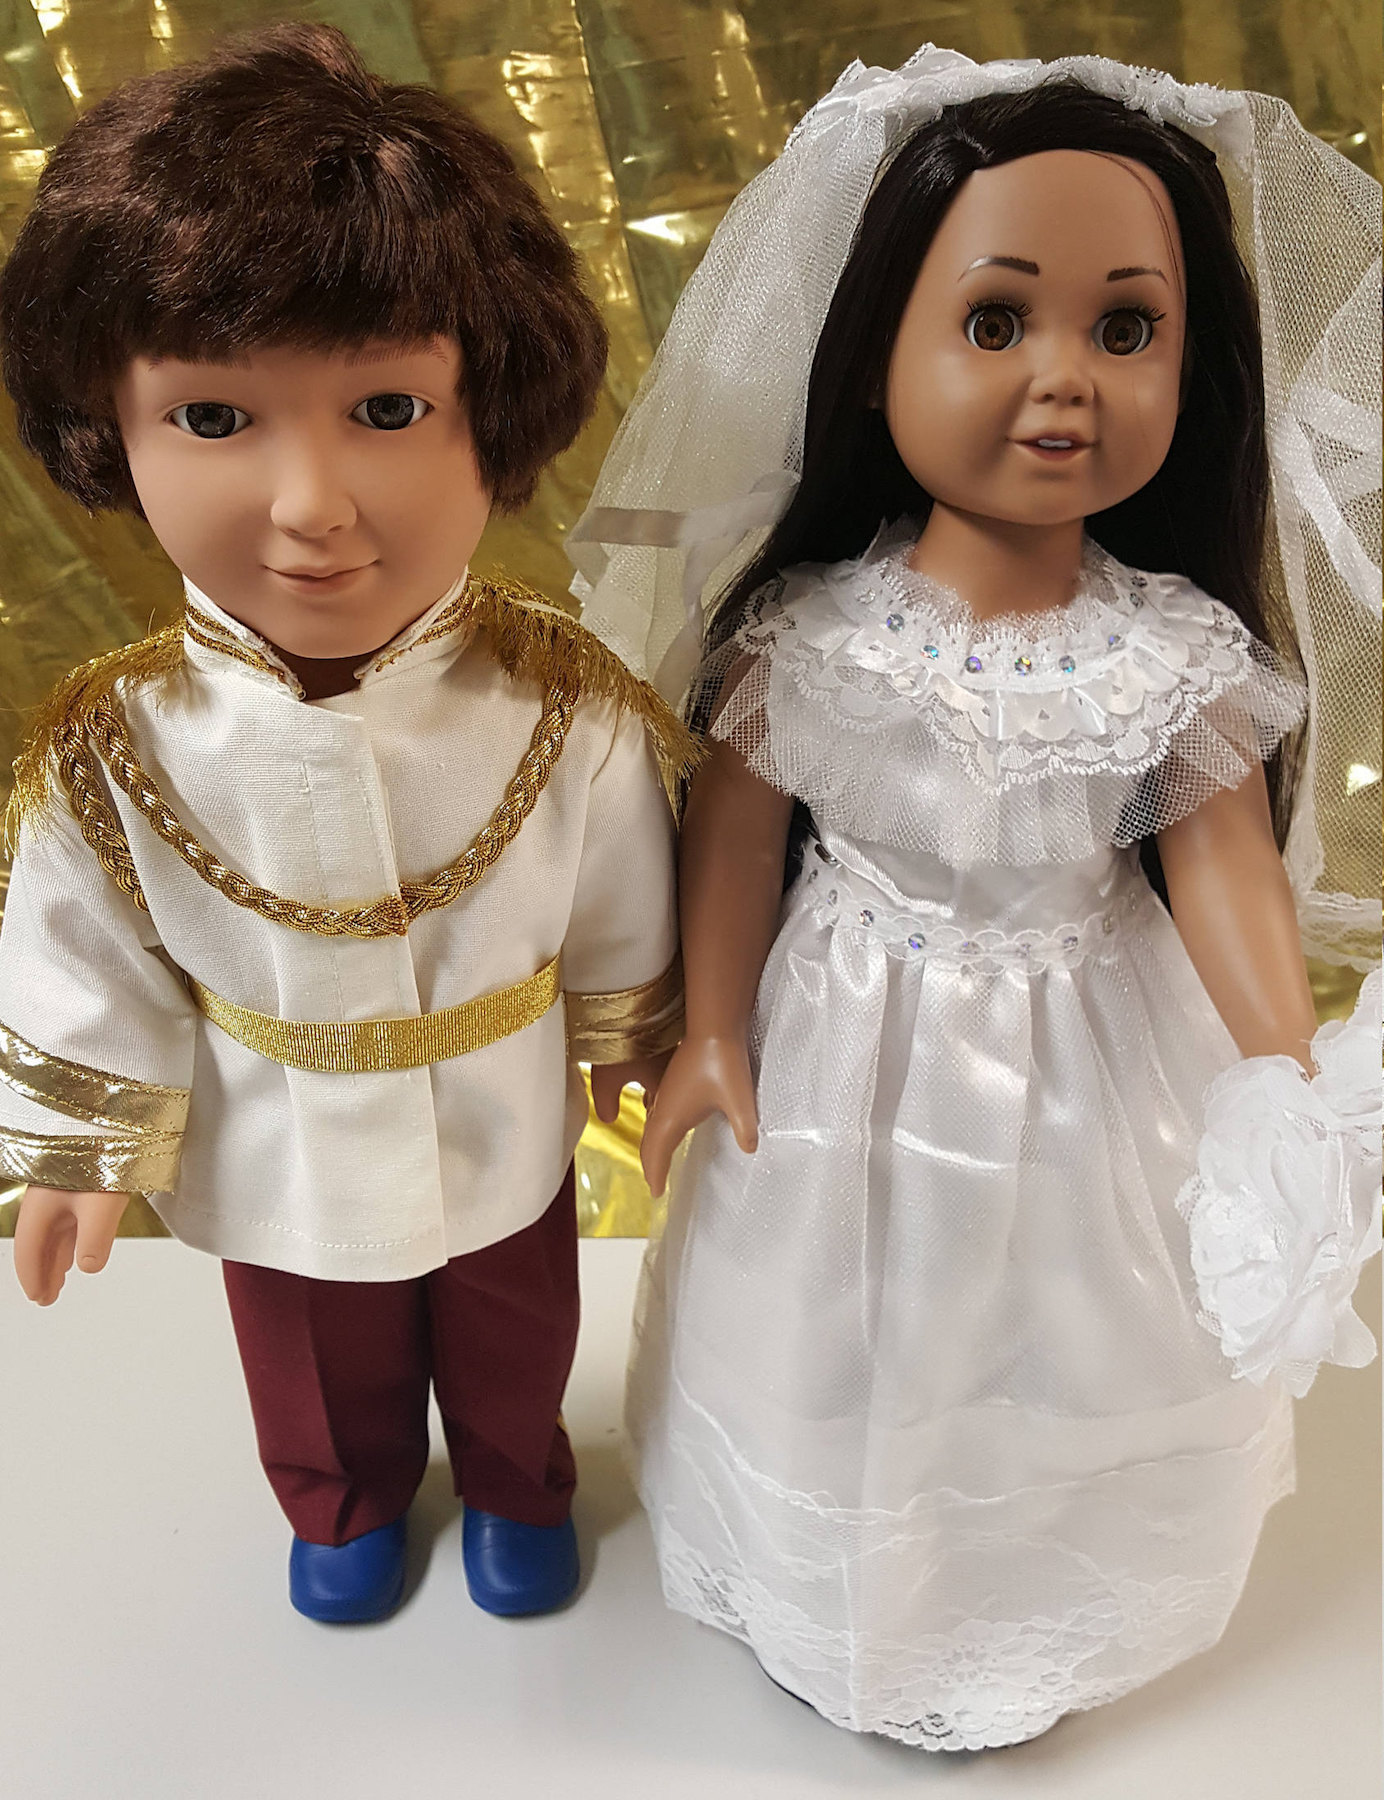 Meghan Markle and Prince Harry dolls in wedding attire